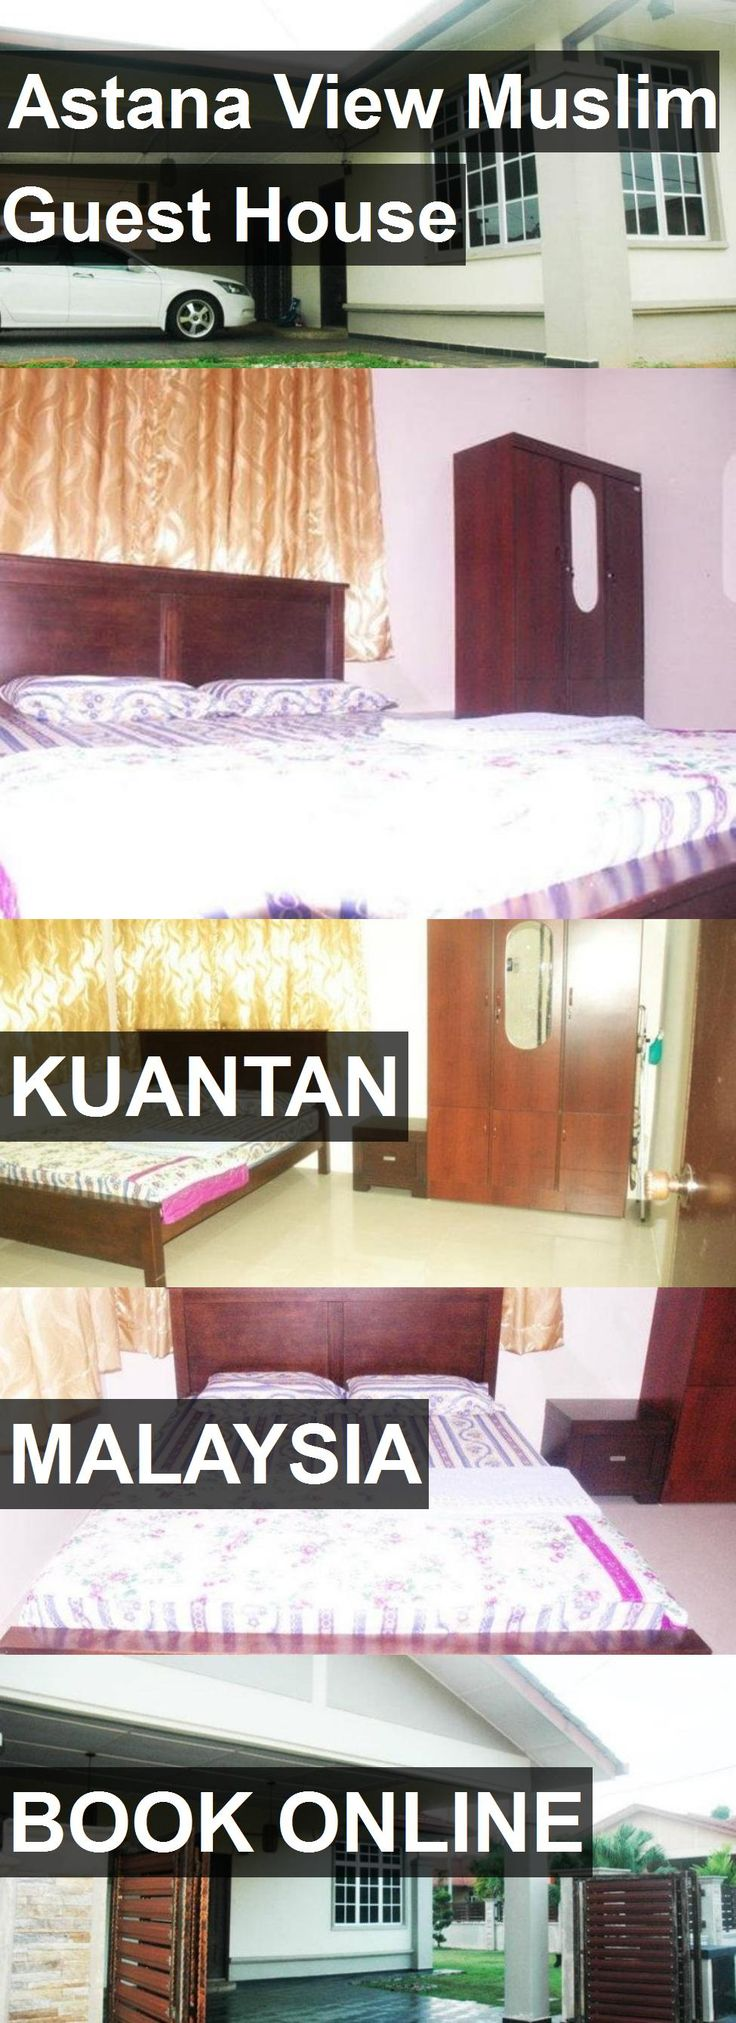 Astana View Muslim Guest House in Kuantan, Malaysia. For more information, photos, reviews and best prices please follow the link. #Malaysia #Kuantan #travel #vacation #guesthouse